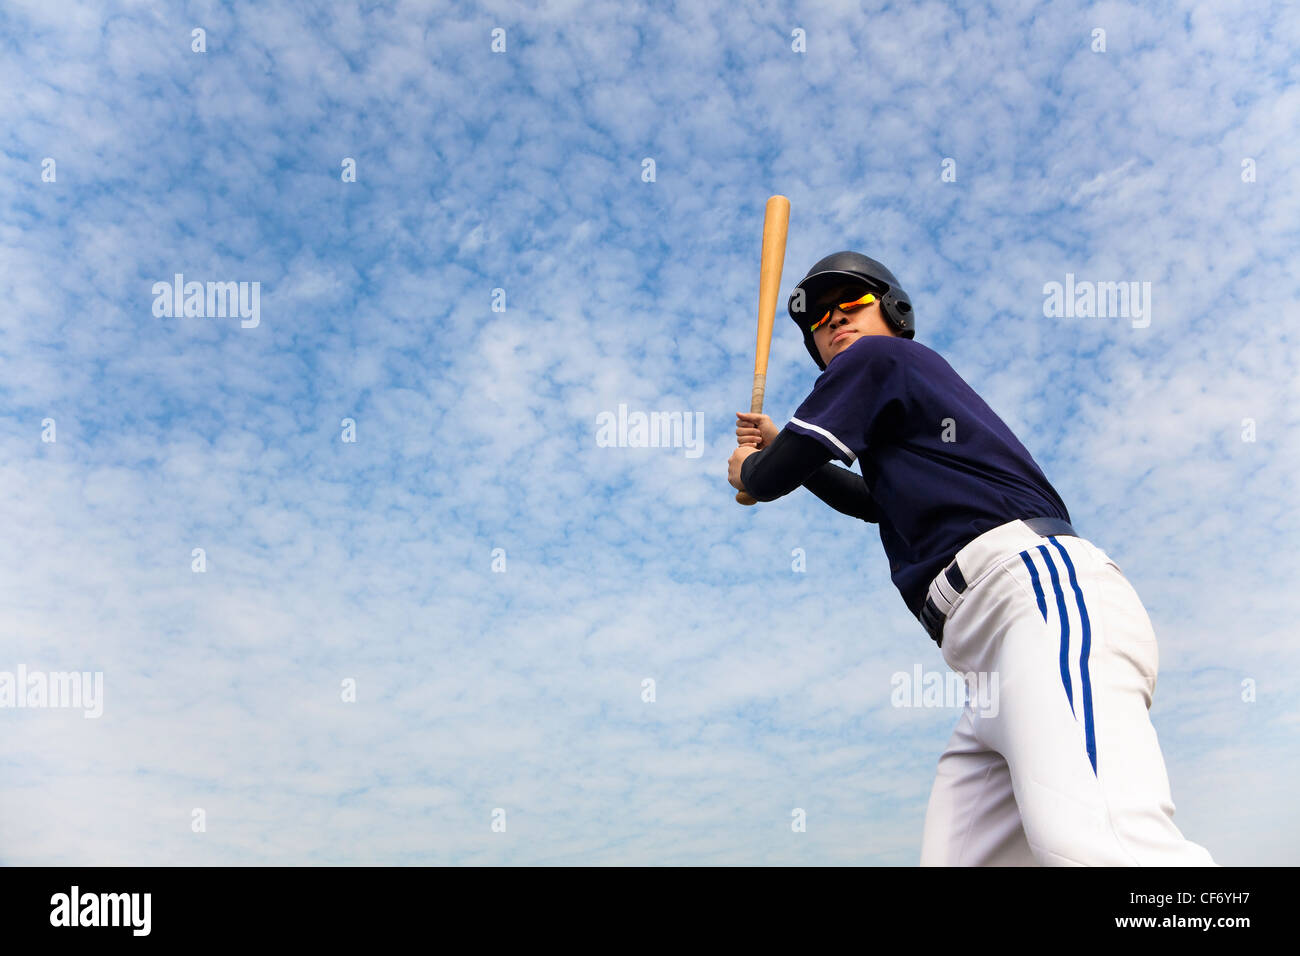 young baseball player ready for swing - Stock Image